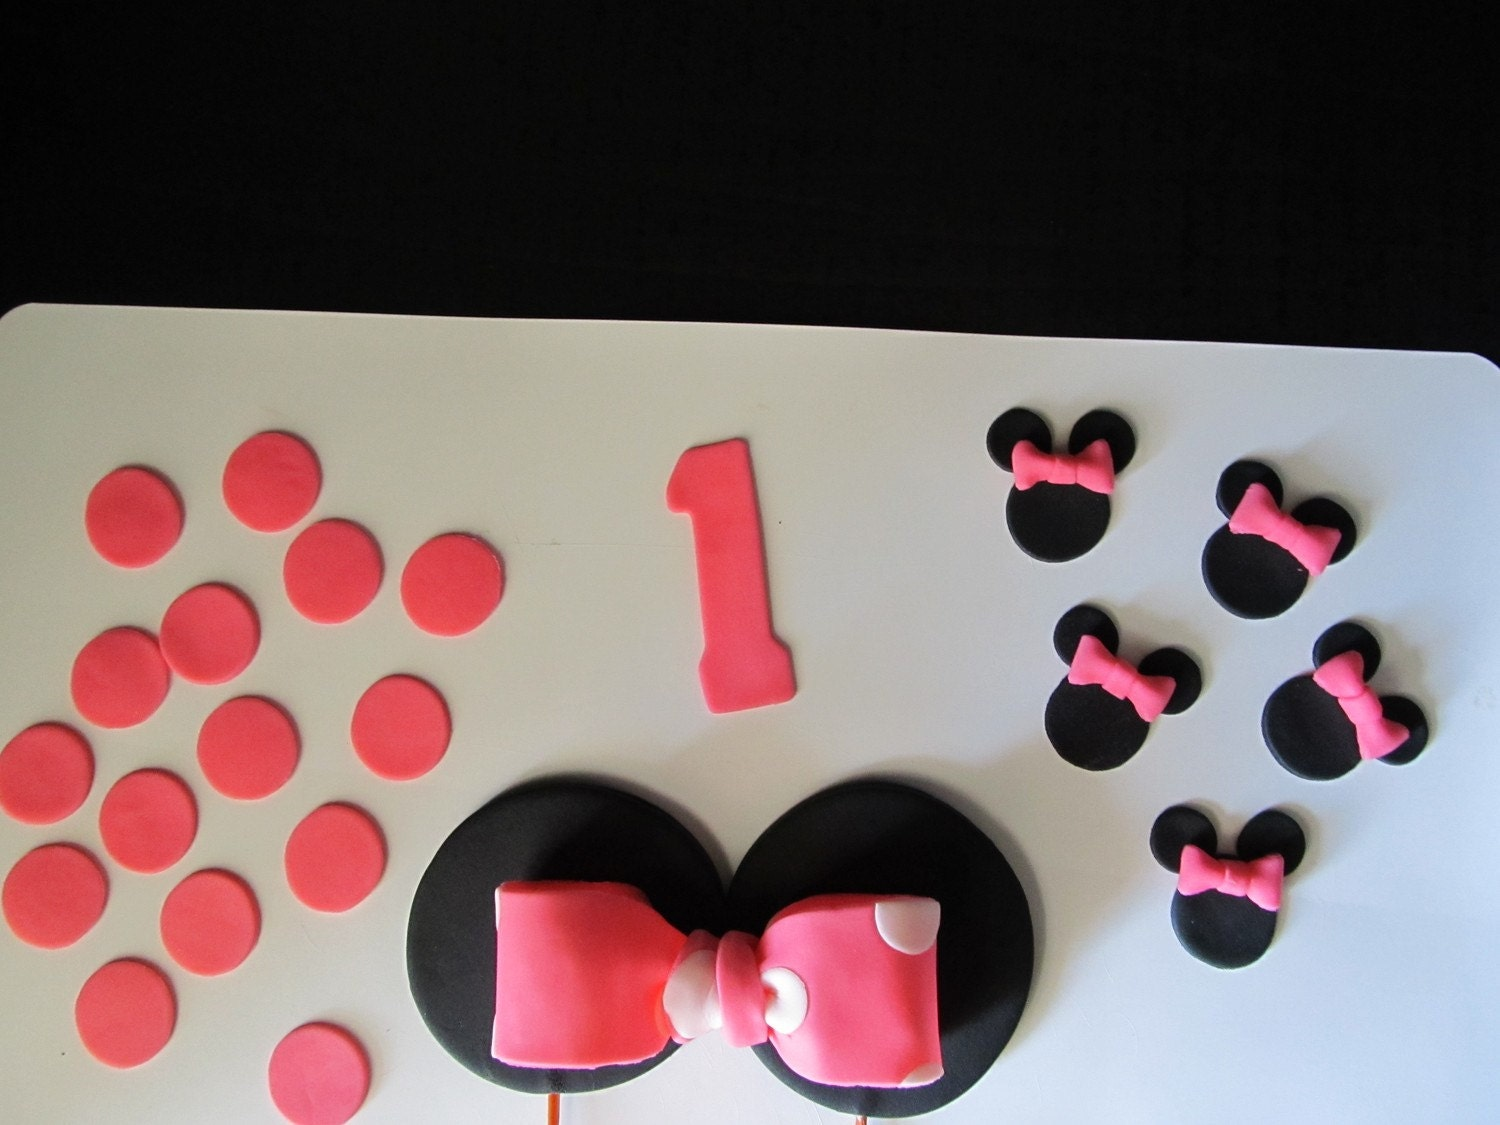 Baby Mickey Mouse Edible Cake Decorations Mickey Mouse Edible Cupcake Decorations Cake